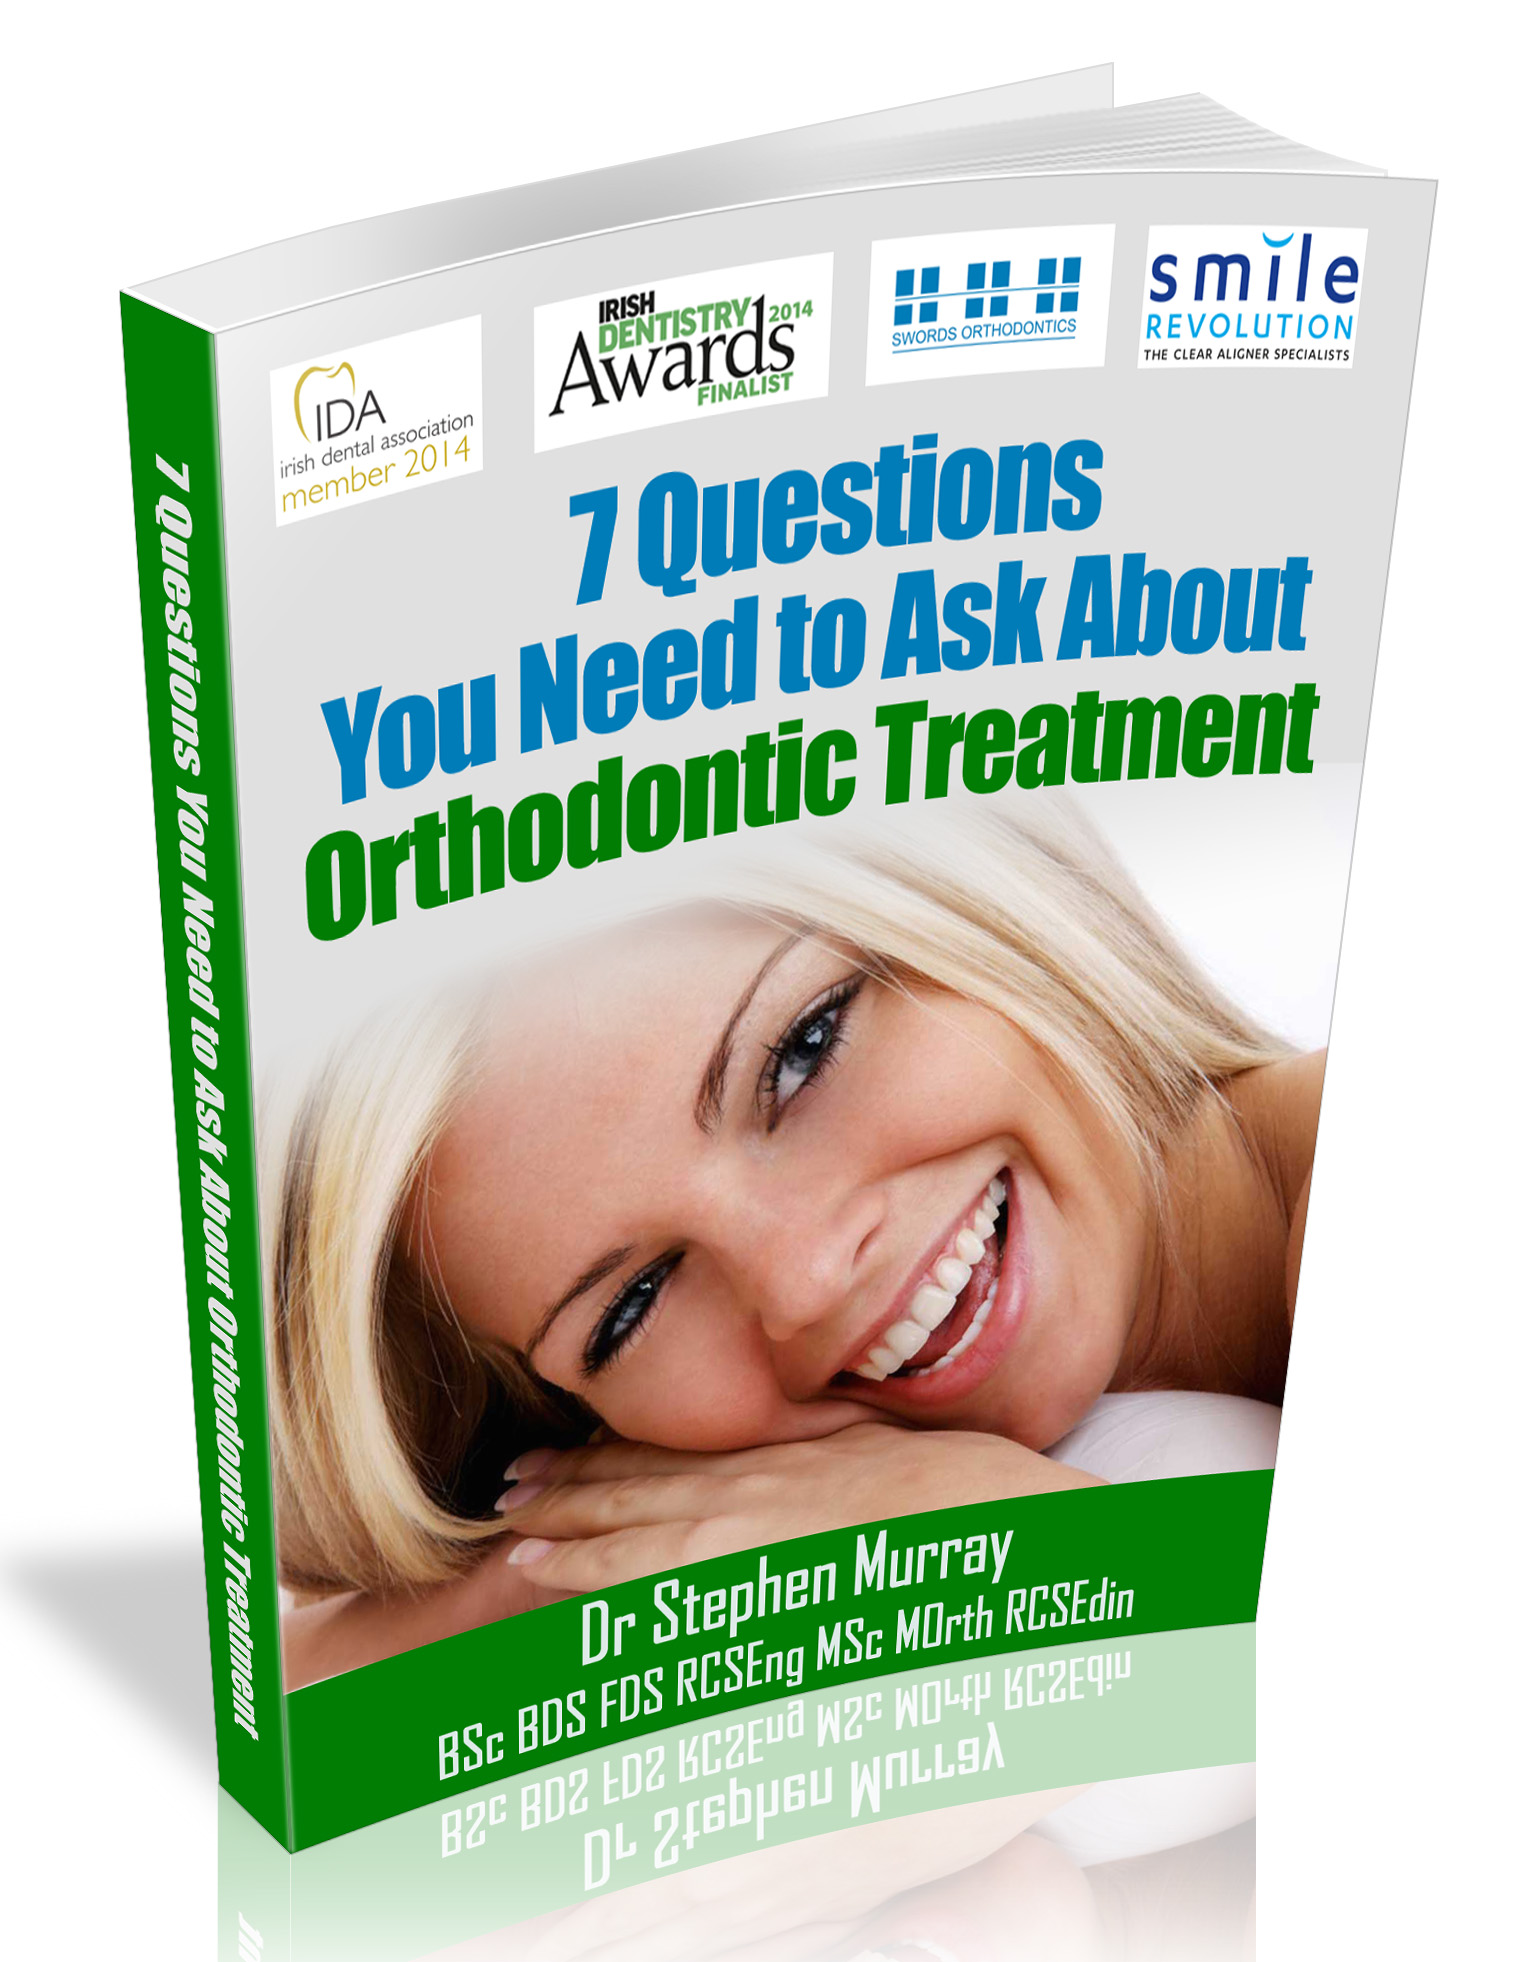 7 Questions You Need to Ask About Orthodontic Treatment eBook by Dr Stephen Murray, Specialist Orthodontist